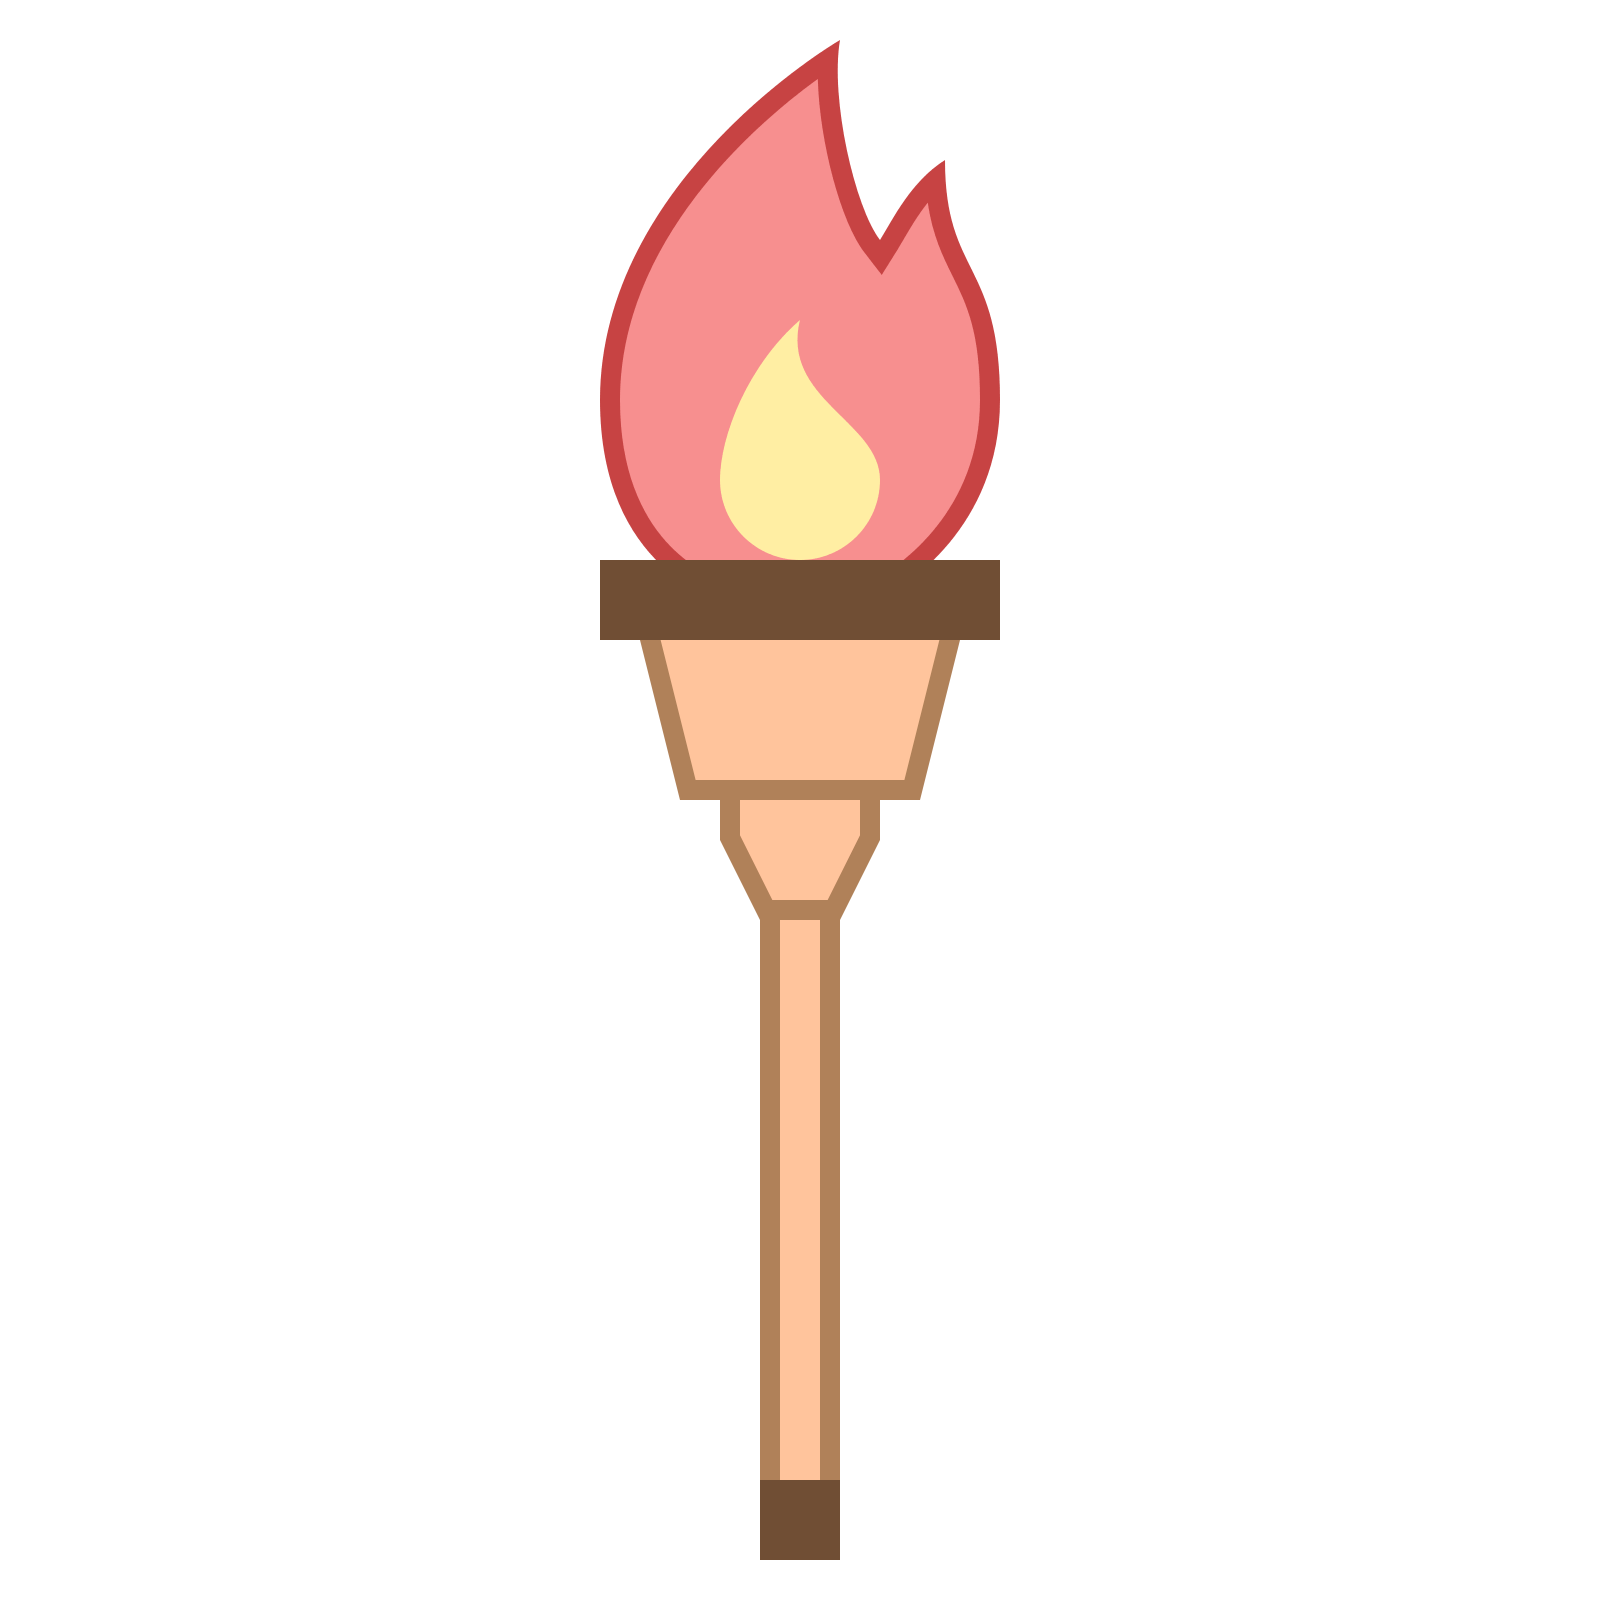 Laurel clipart olympic. Torch outside game pencil